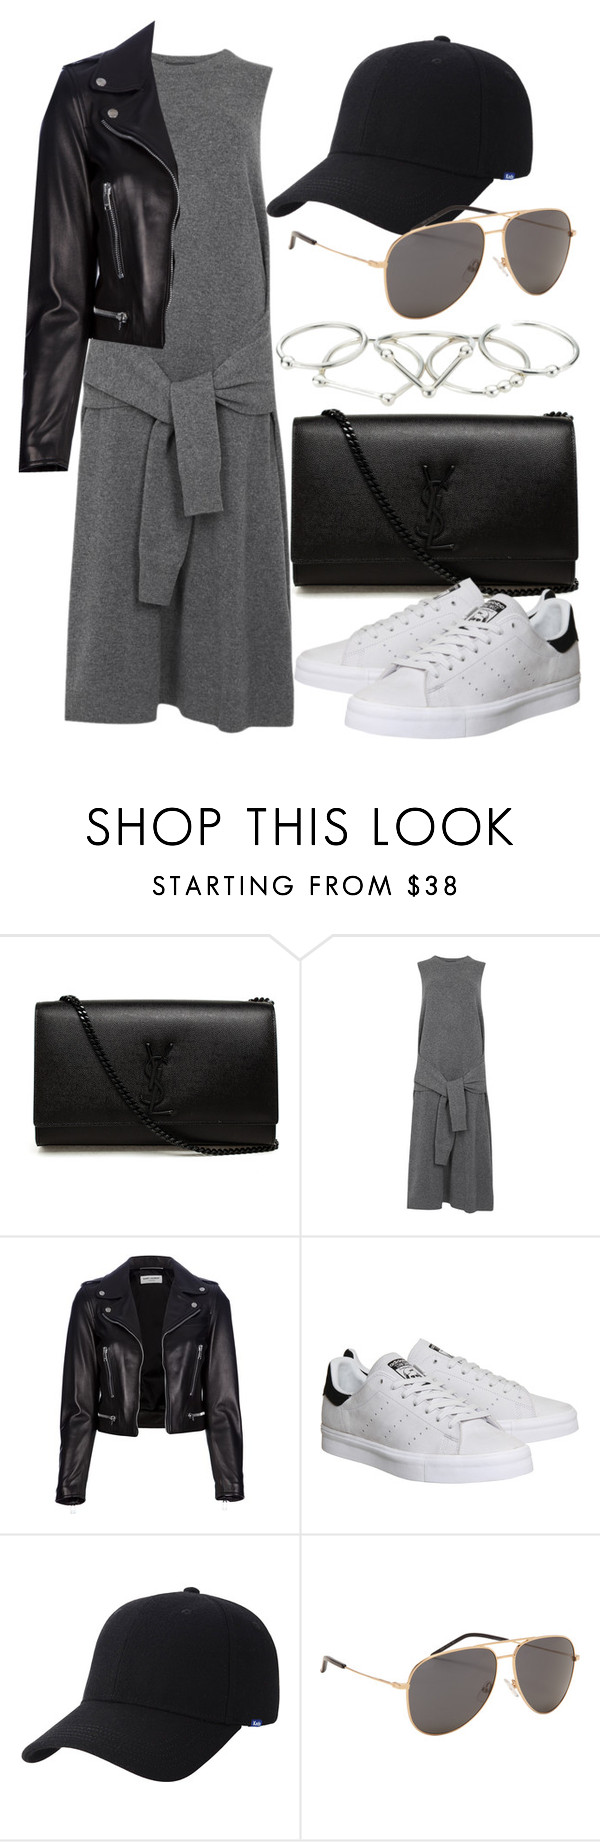 """Untitled #2196"" by annielizjung ❤ liked on Polyvore featuring Yves Saint Laurent, Joseph, adidas, Keds and Zimmermann"